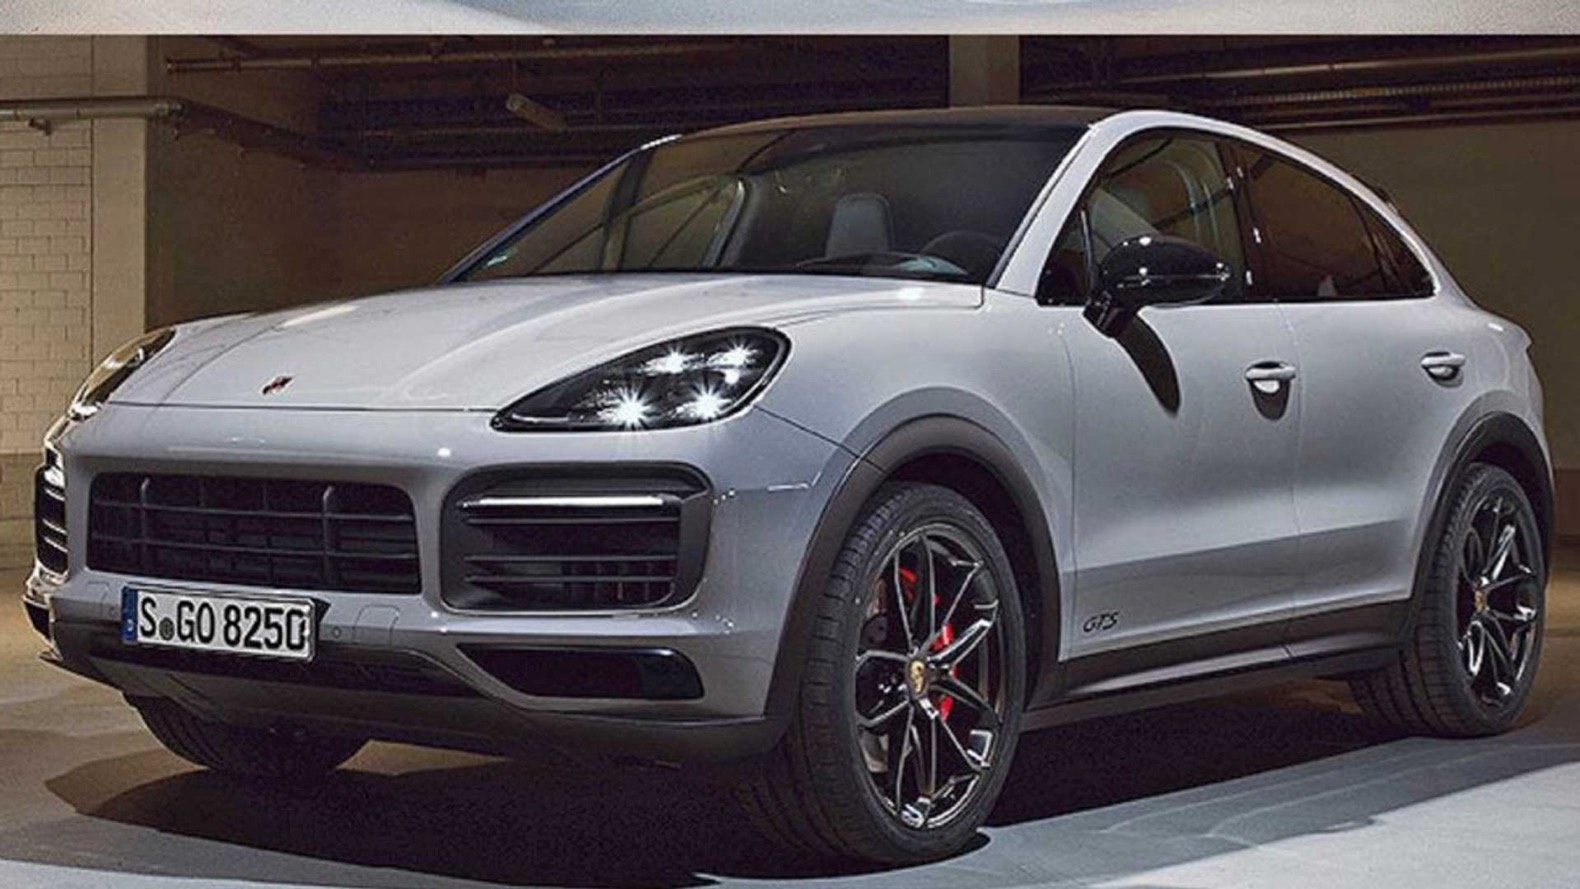 2021 Porsche Cayenne Gts Leaked The Torque Report